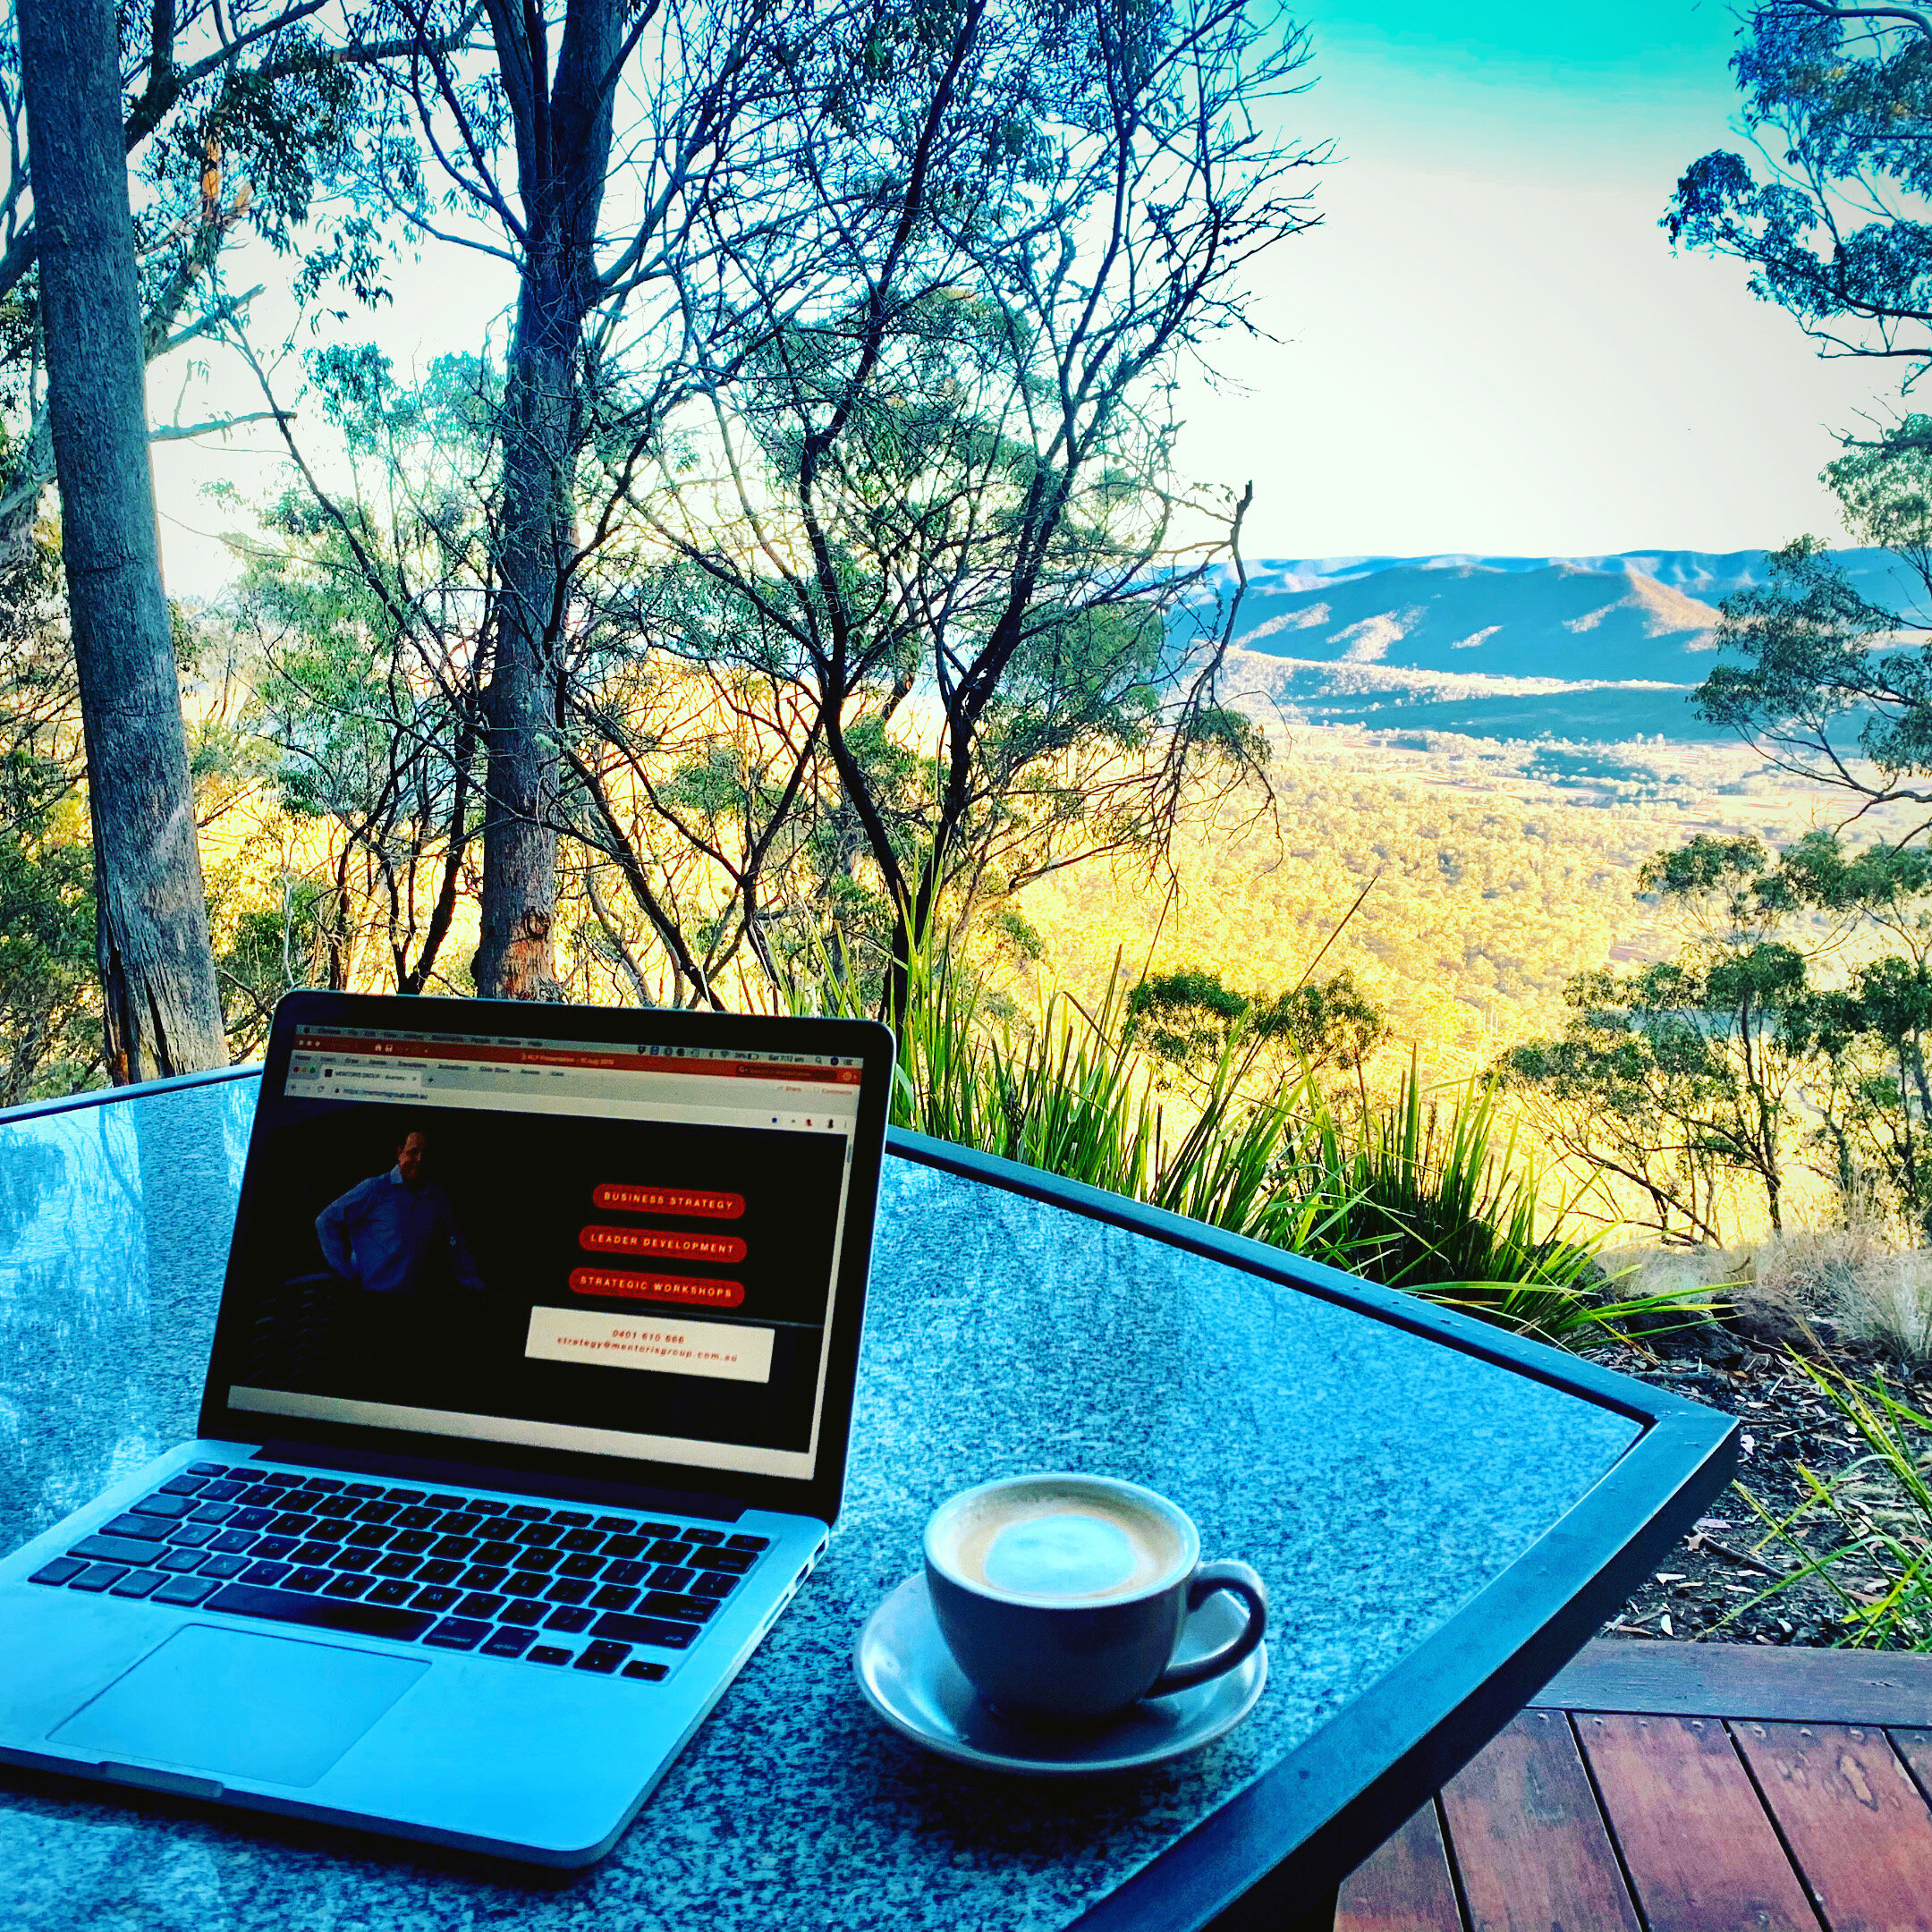 work and coffee alone in the mountains